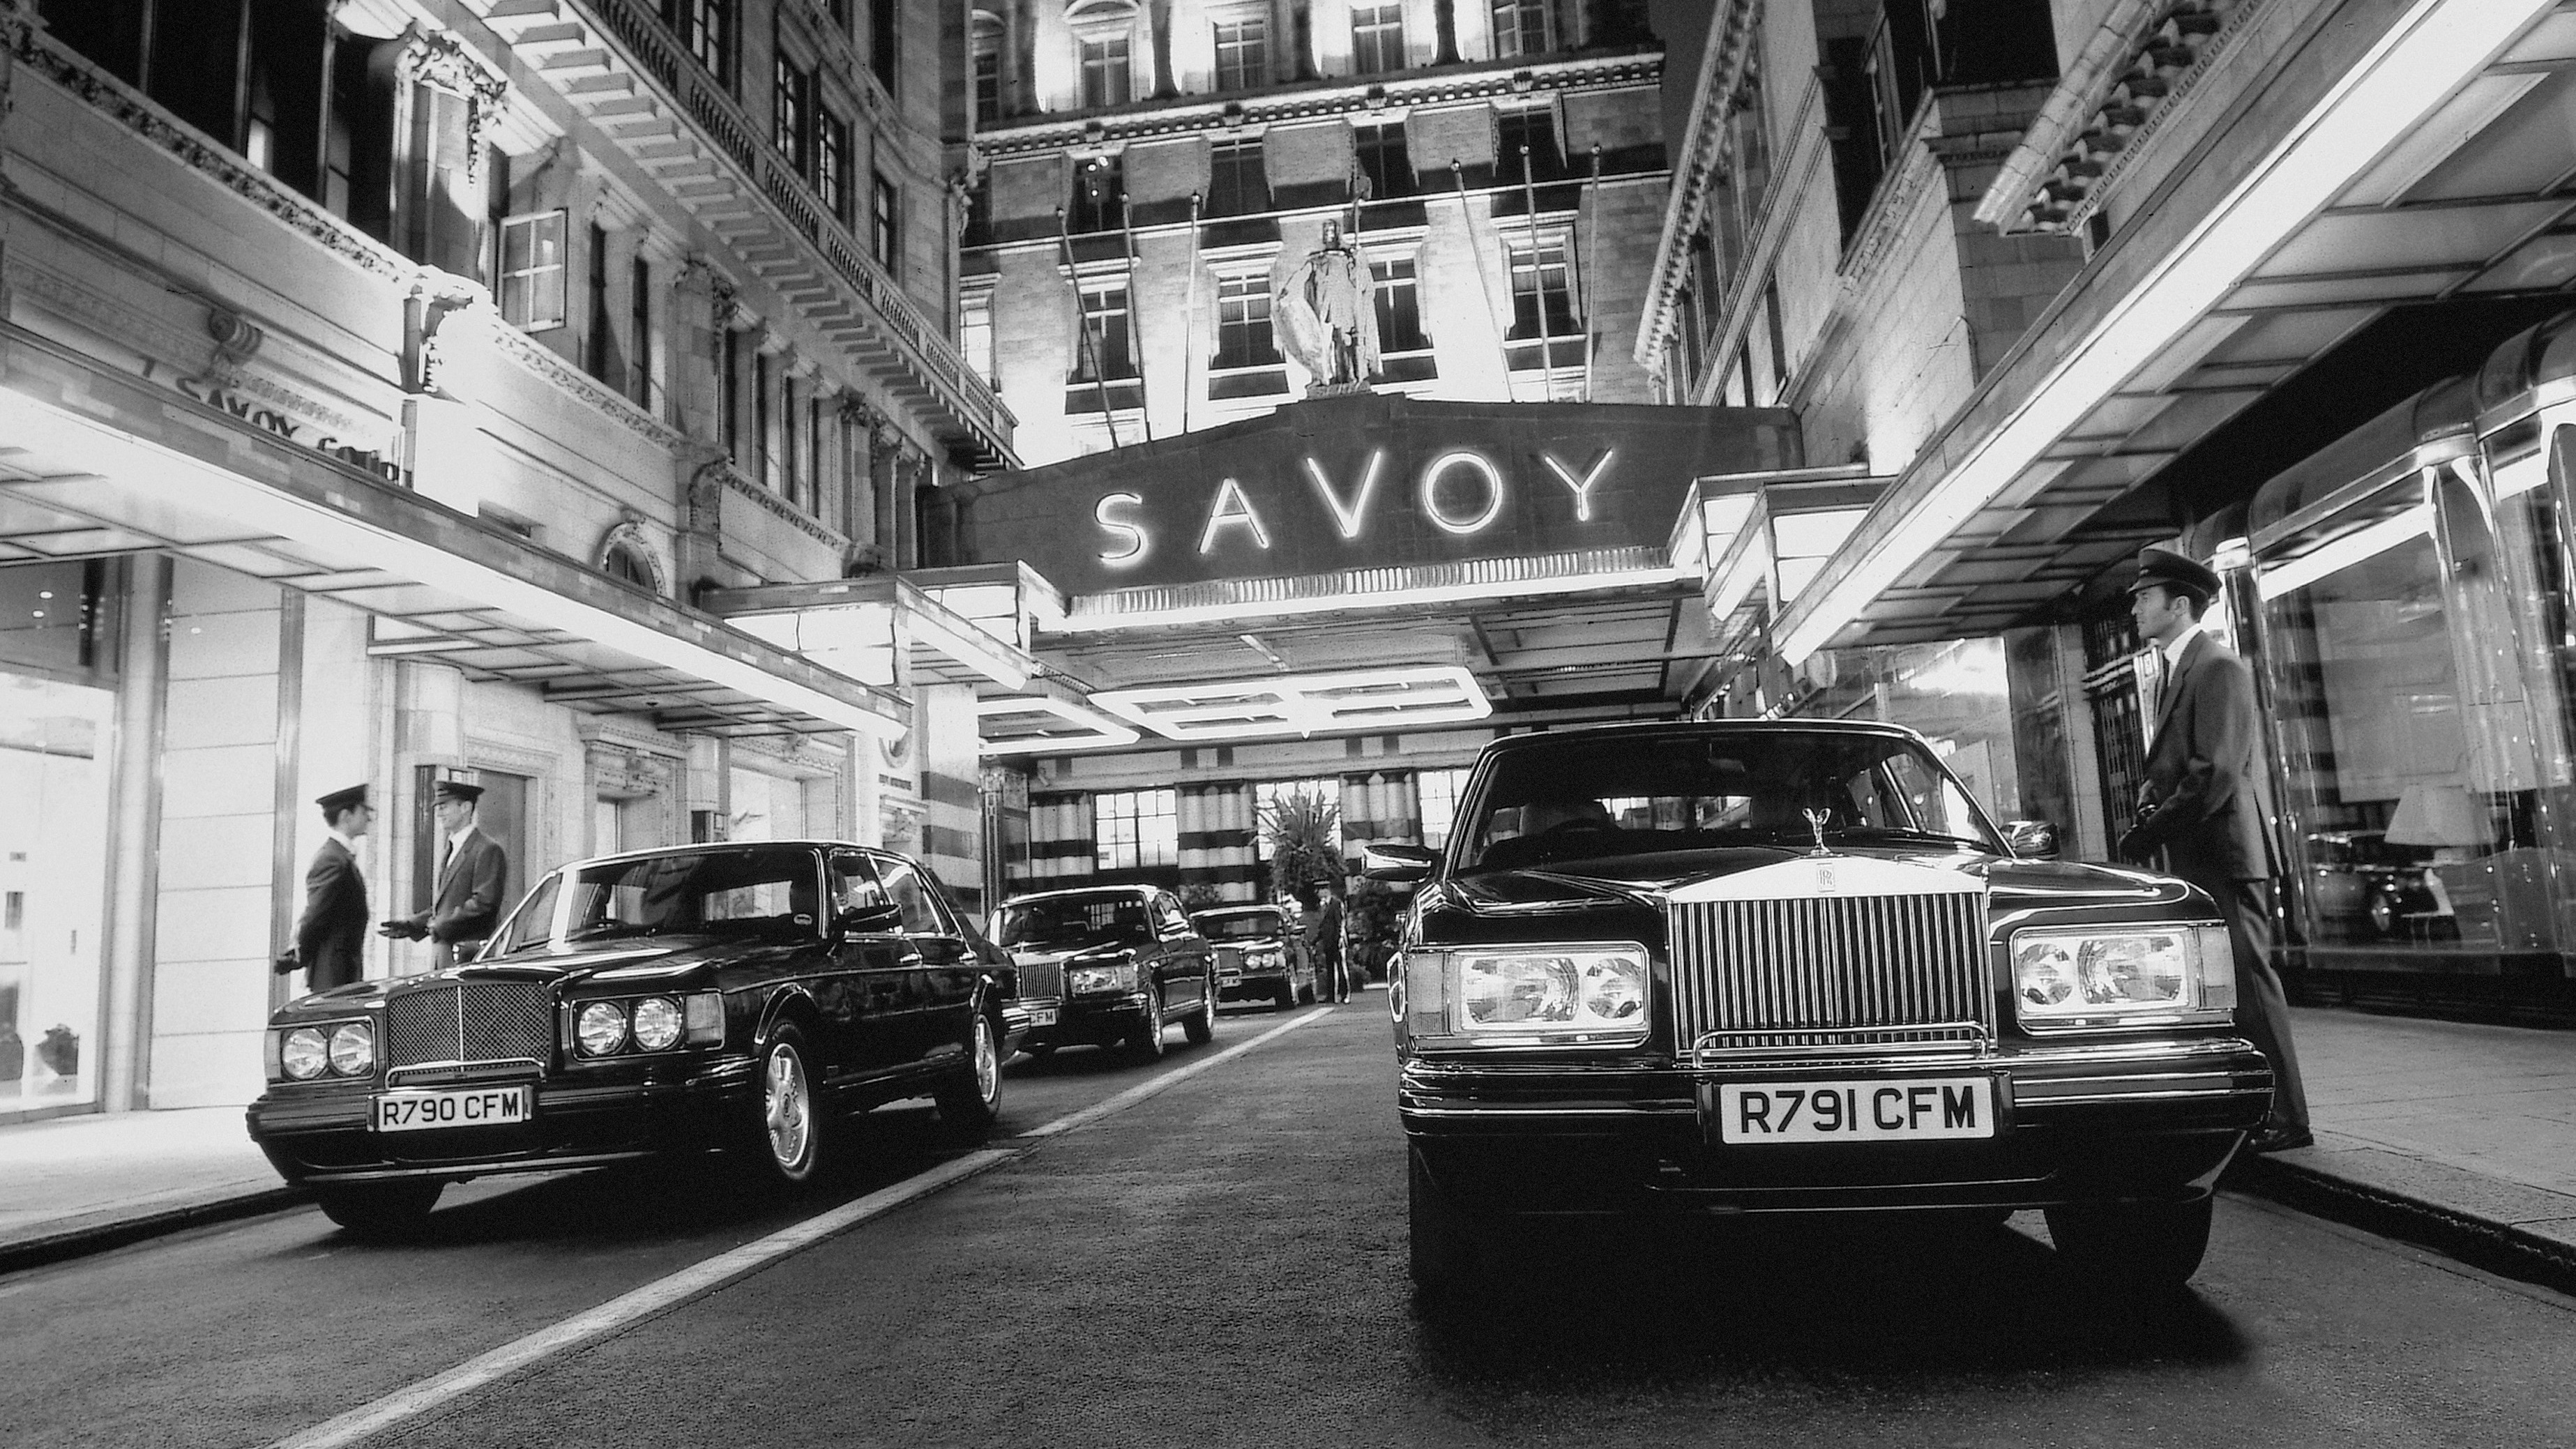 Savoy at night rgb.jpg